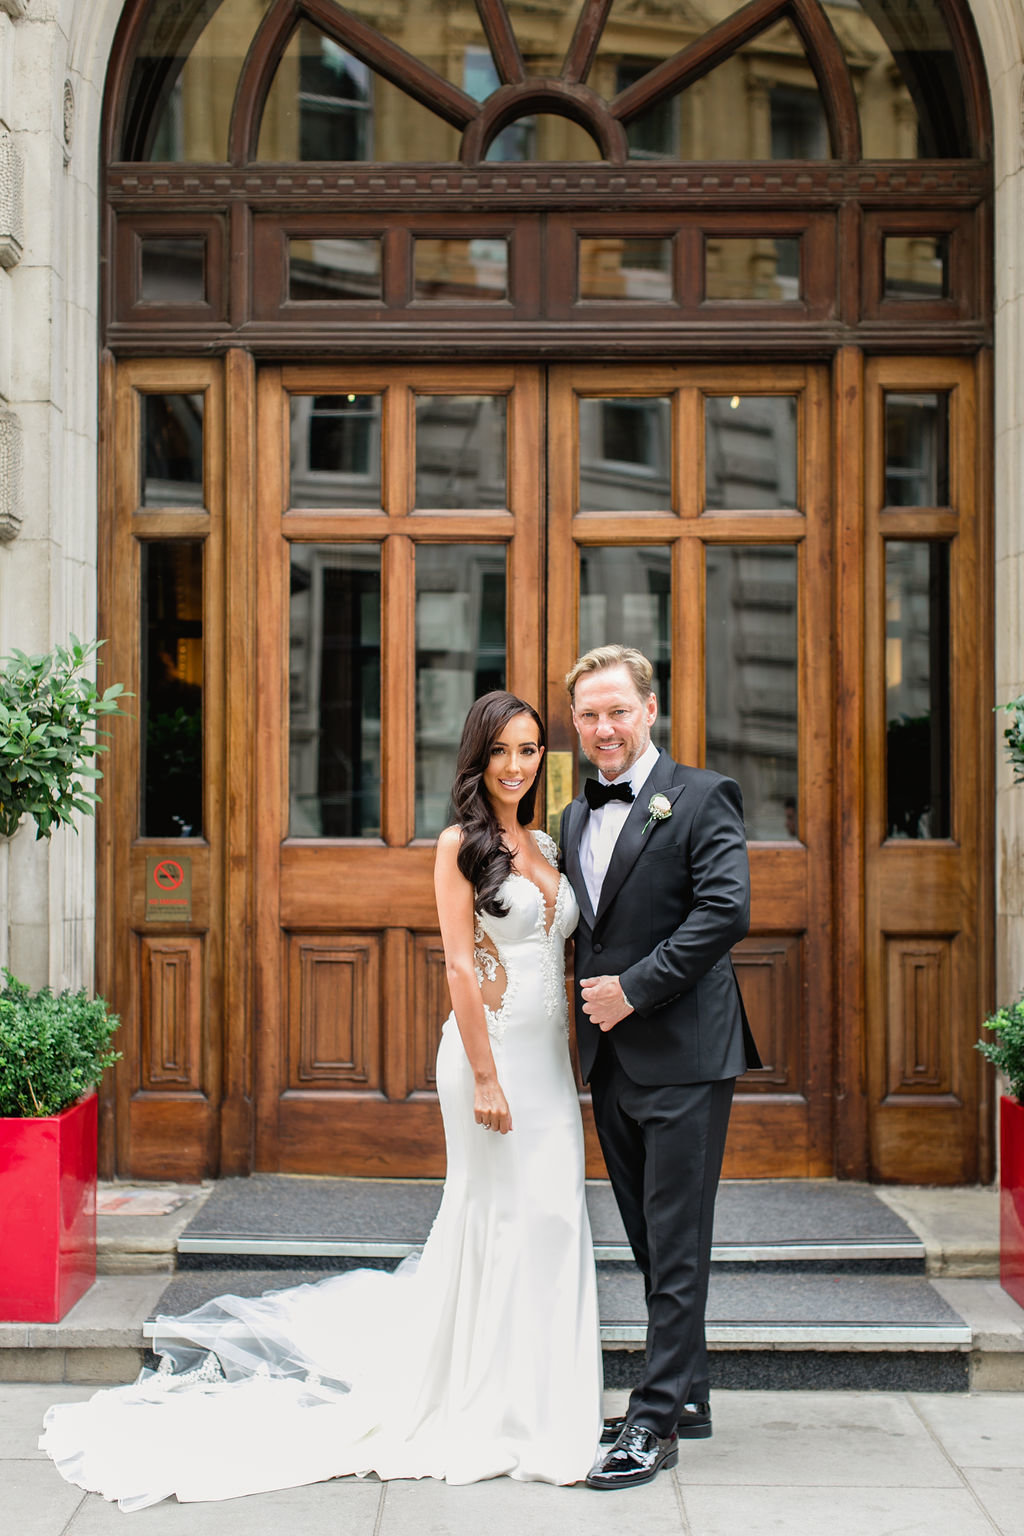 josh-kelly-remy-smith-london-wedding-photographer-roberta-facchini-photography-78